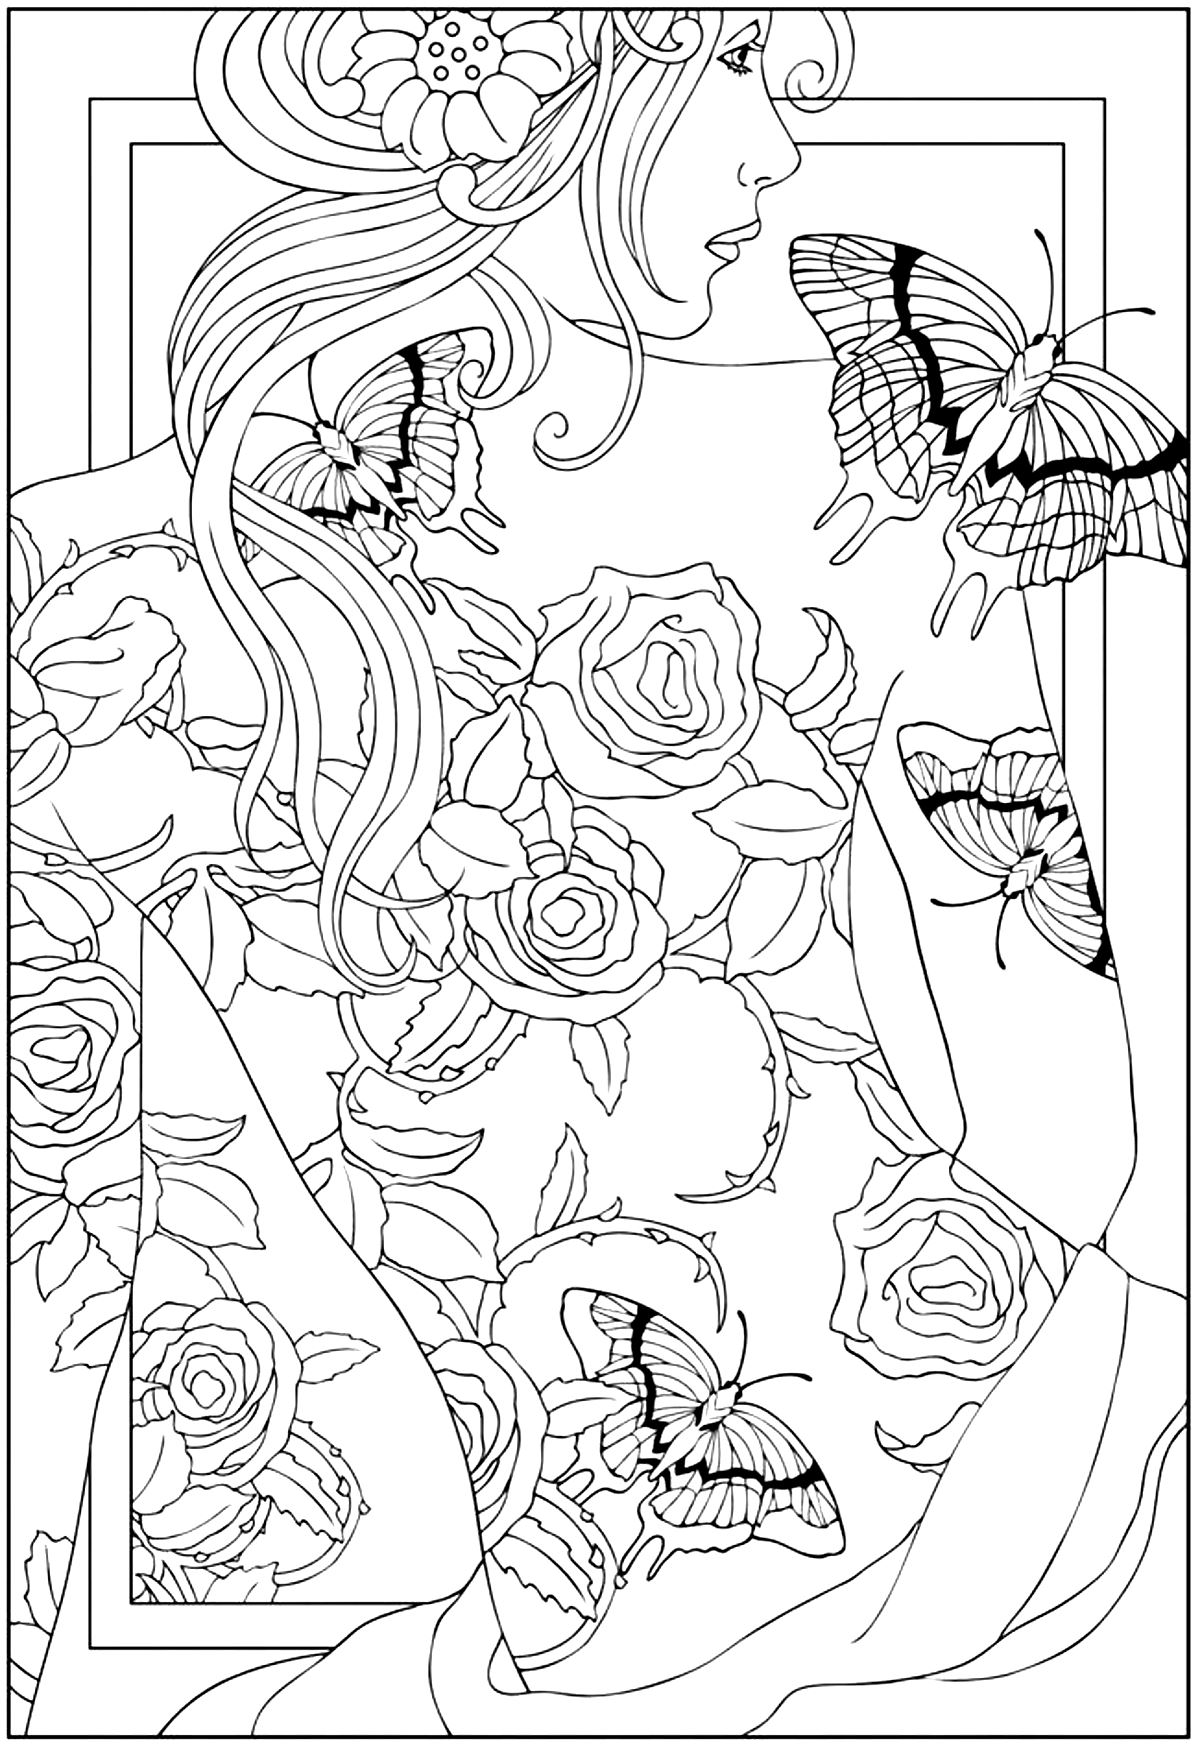 free printable coloring pages for adults zen : Coloring Adult Back Tattooed Woman Free To Print